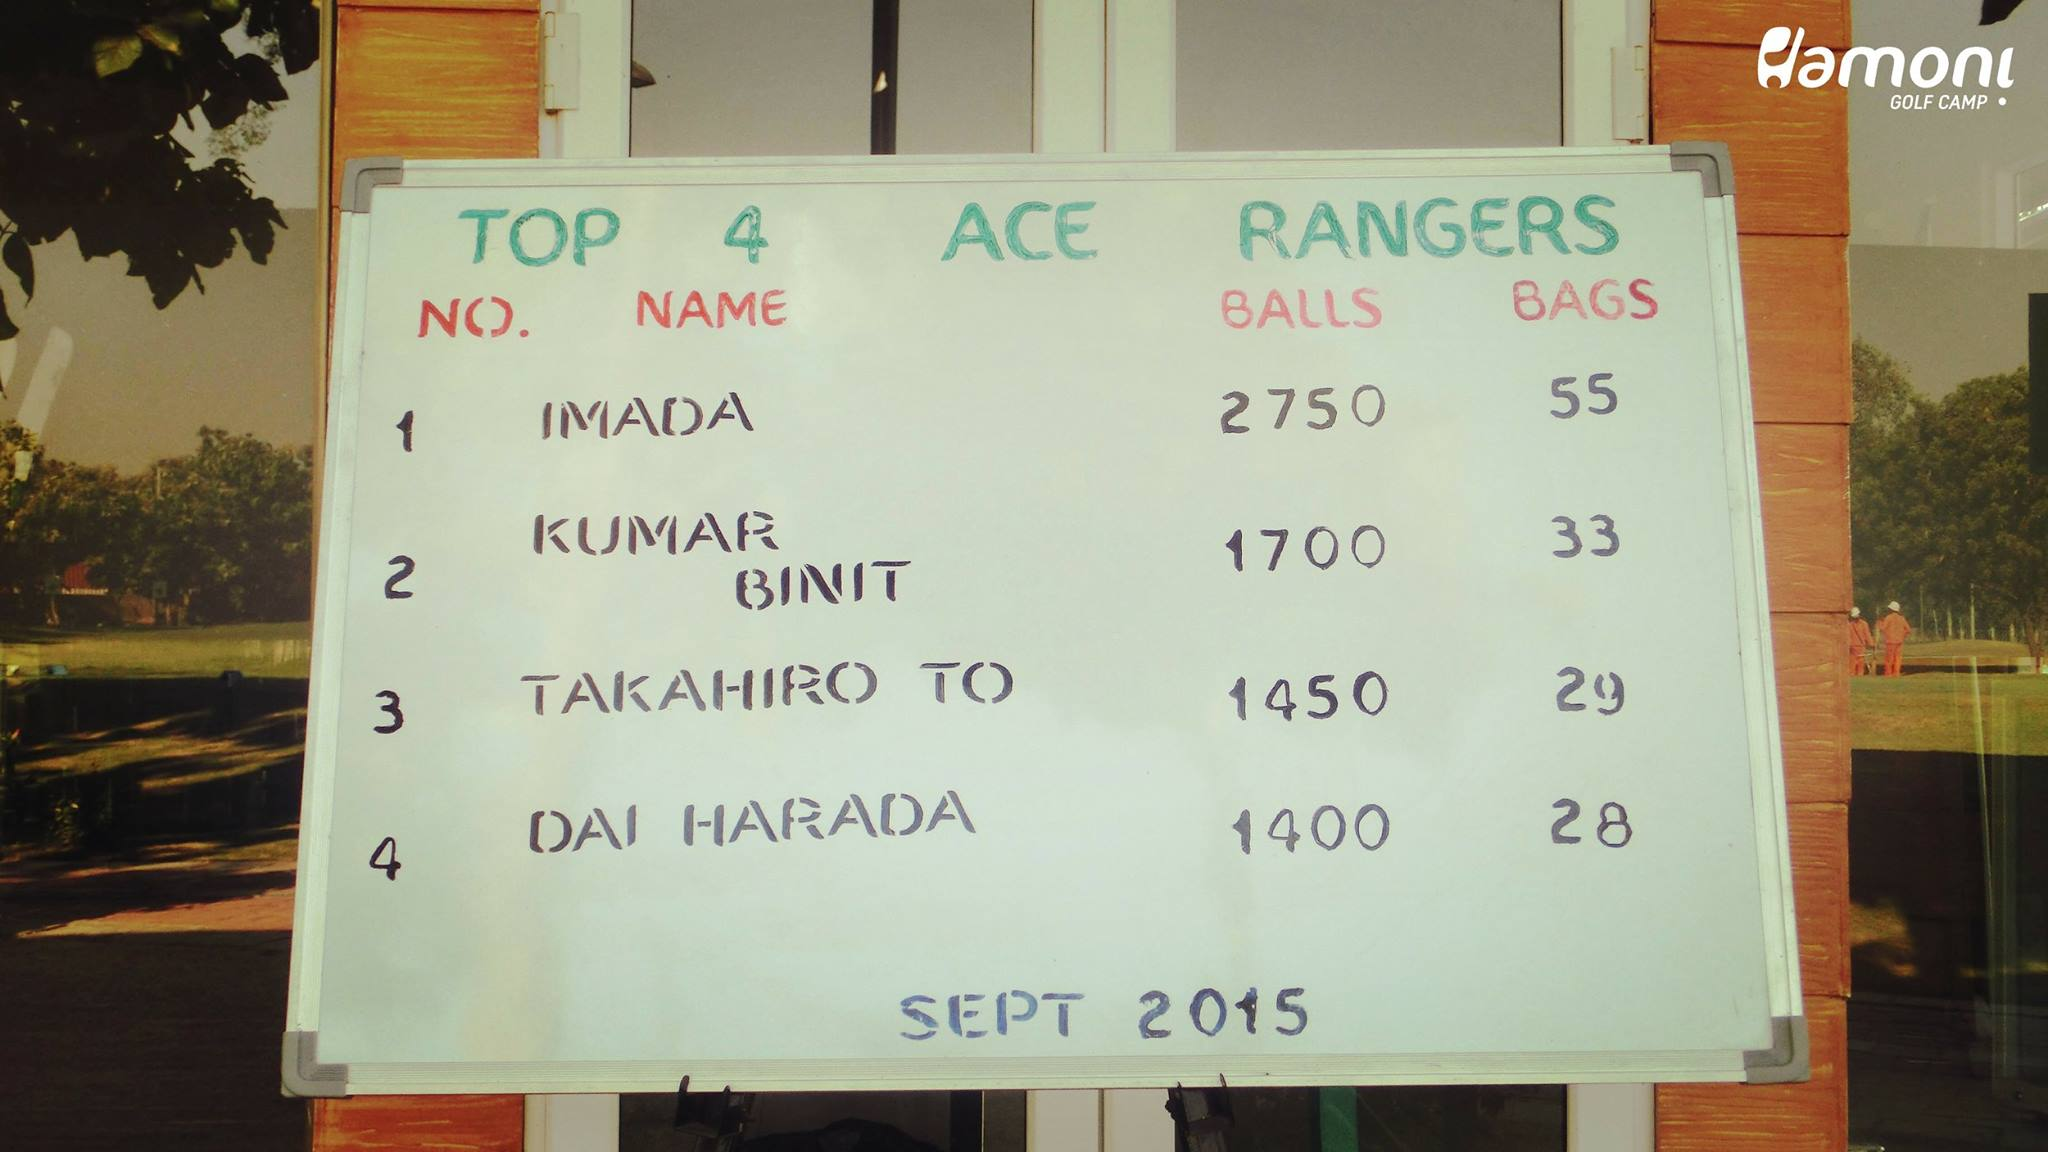 Leaderboard Hamoni Ace Ranger Sept'15